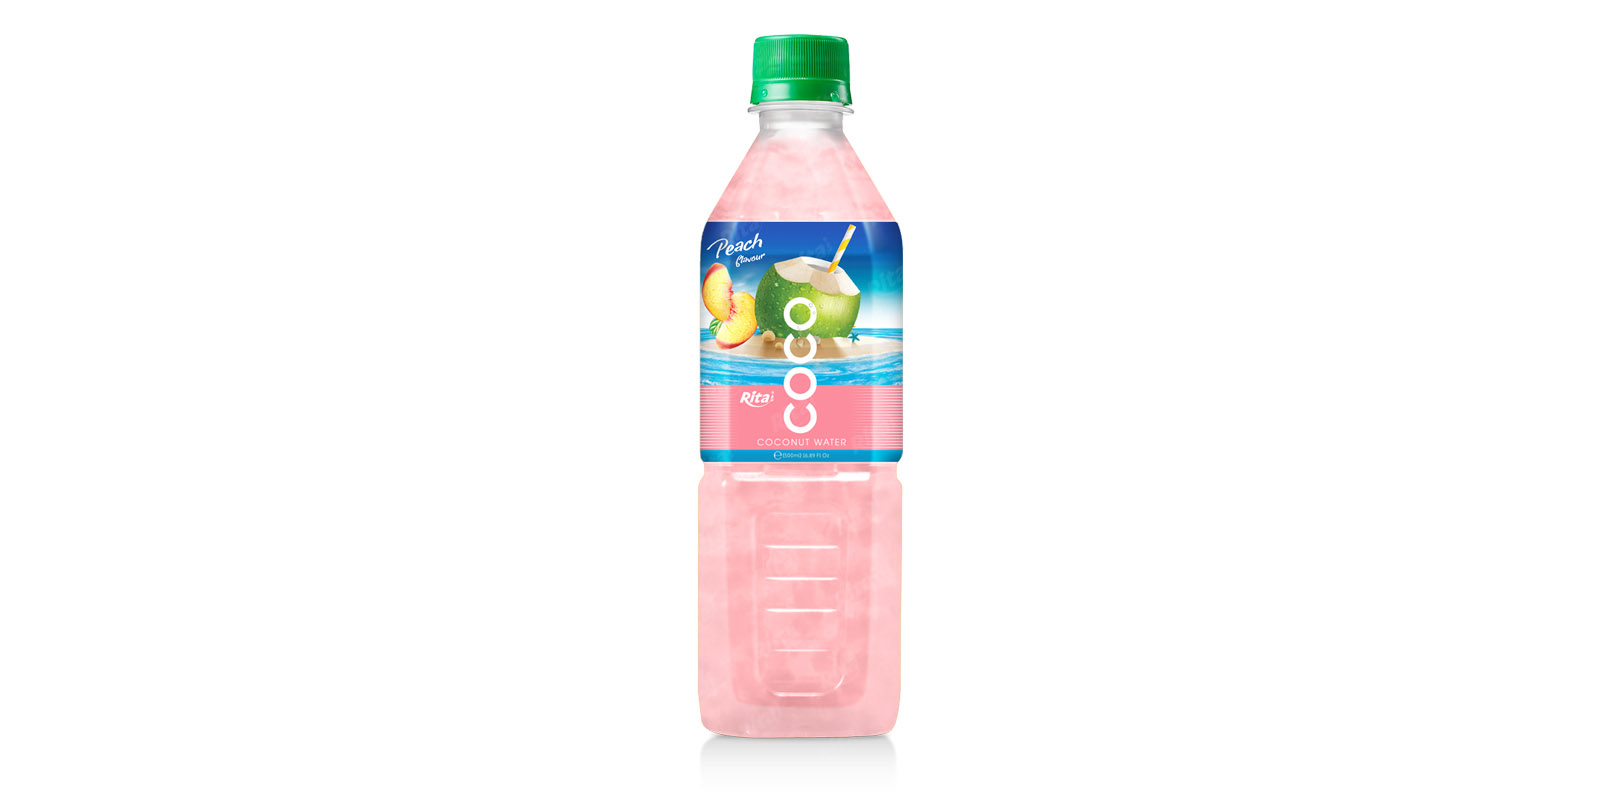 Coconut water with peach flavor  500ml Pet bottle from RITA US